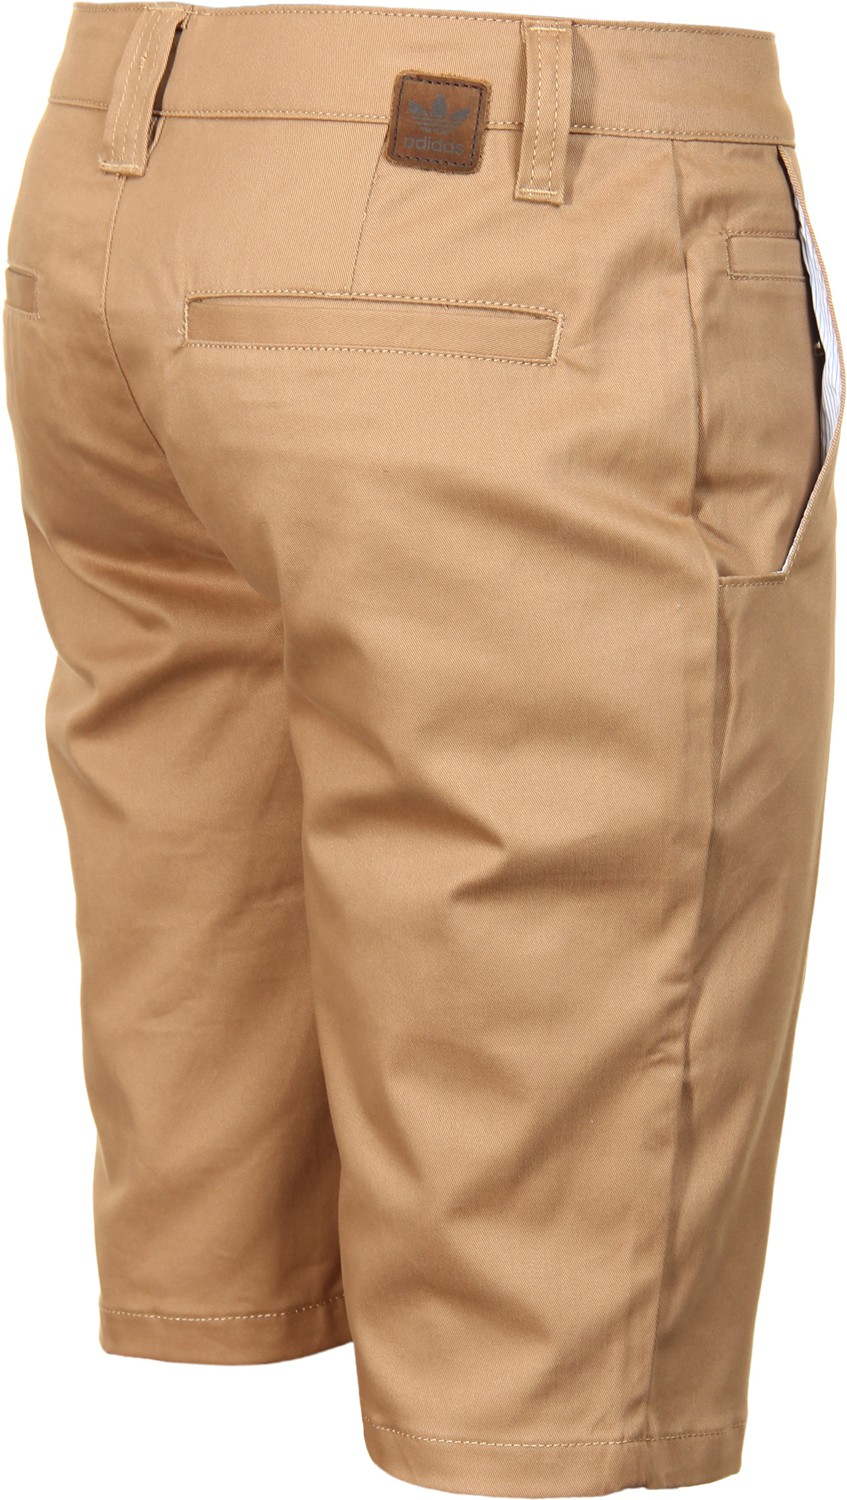 What chinos are the best for a community college student, say ? Looking for something that won't make me look like I'm about to go to an office job, more like something i .